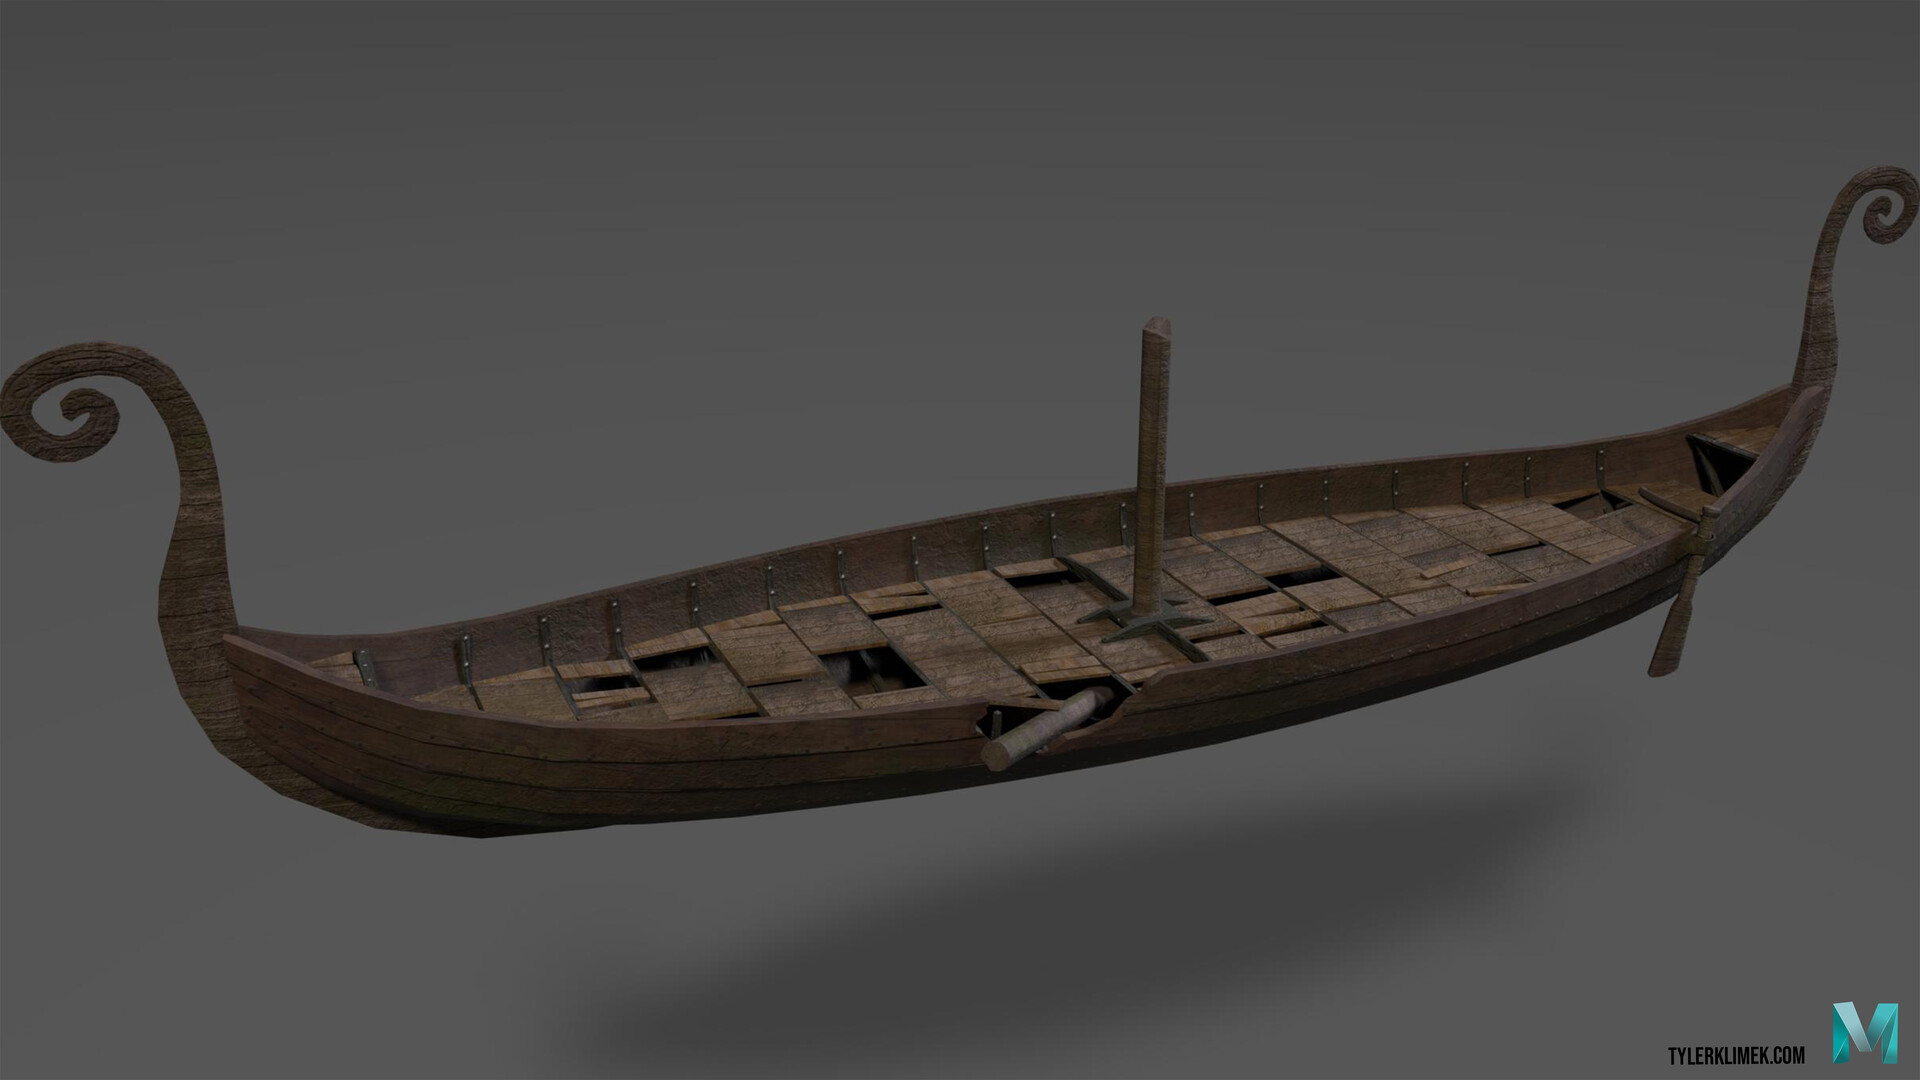 Here is the first asset I made for the project, a sunken Viking Ship.